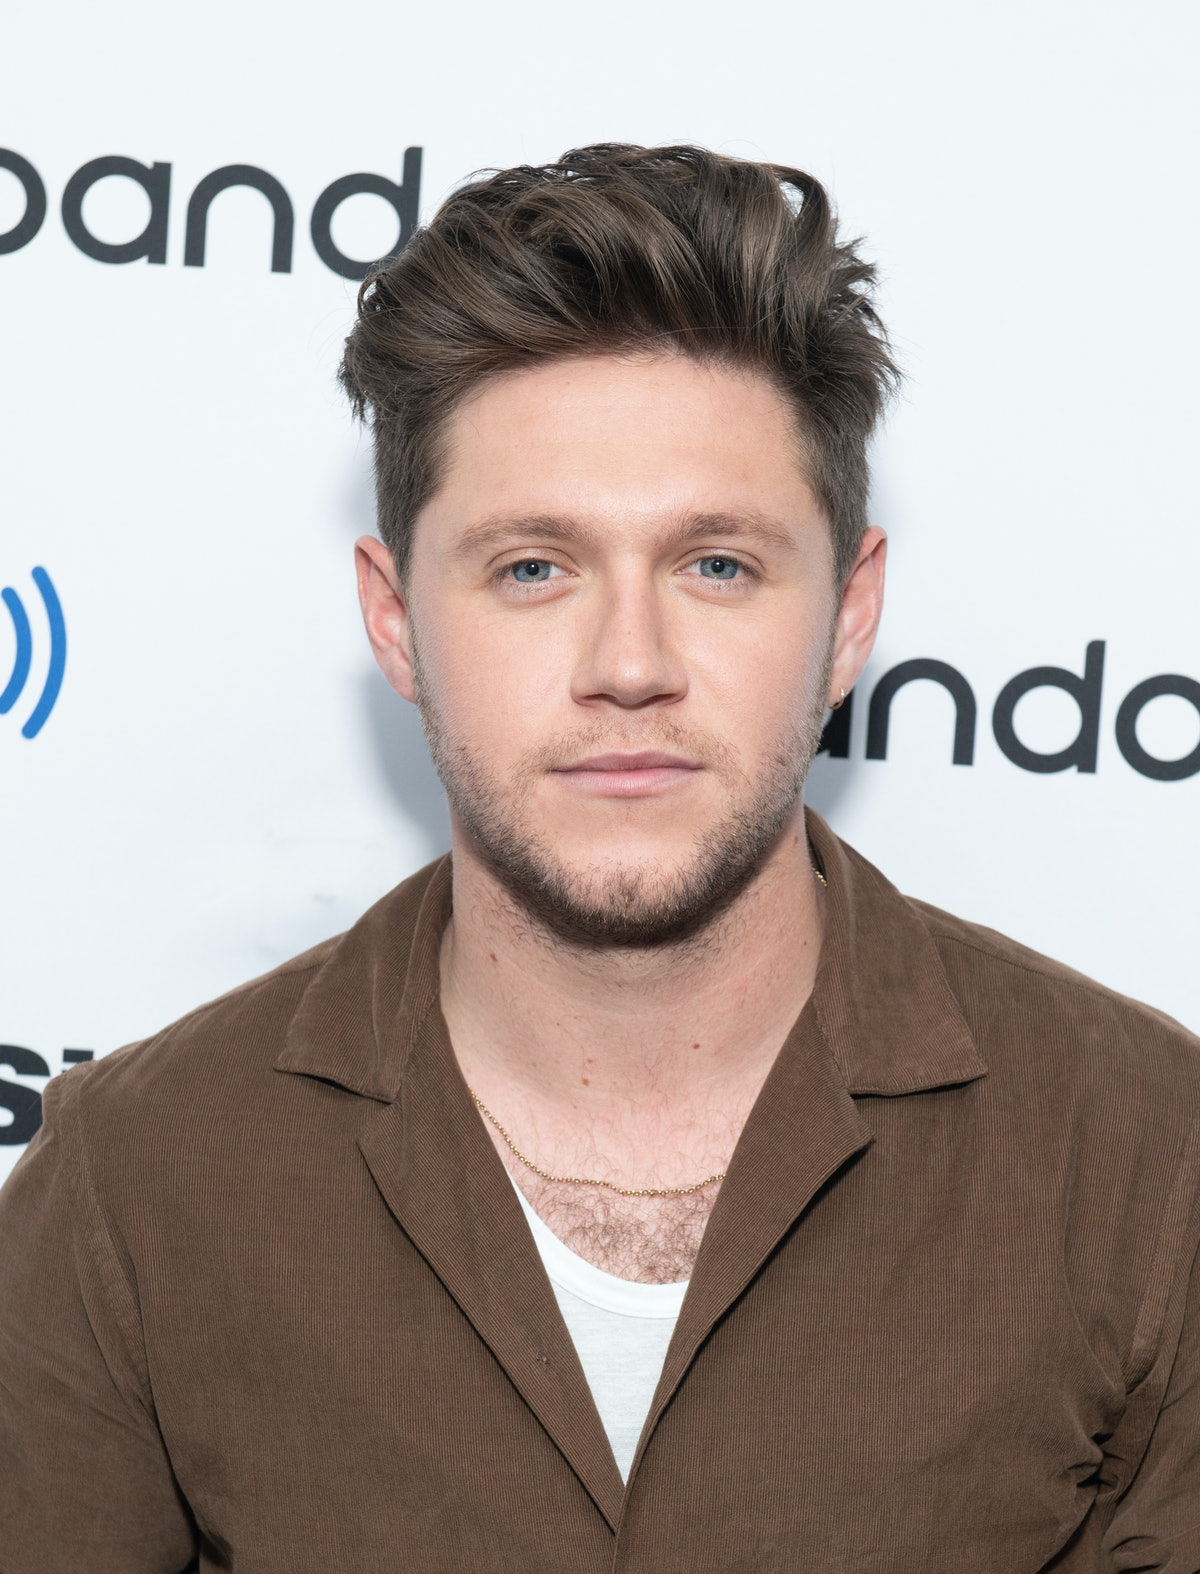 Niall Horan's Selfie With A Selena Gomez Poster Is Fueling Dating Rumors